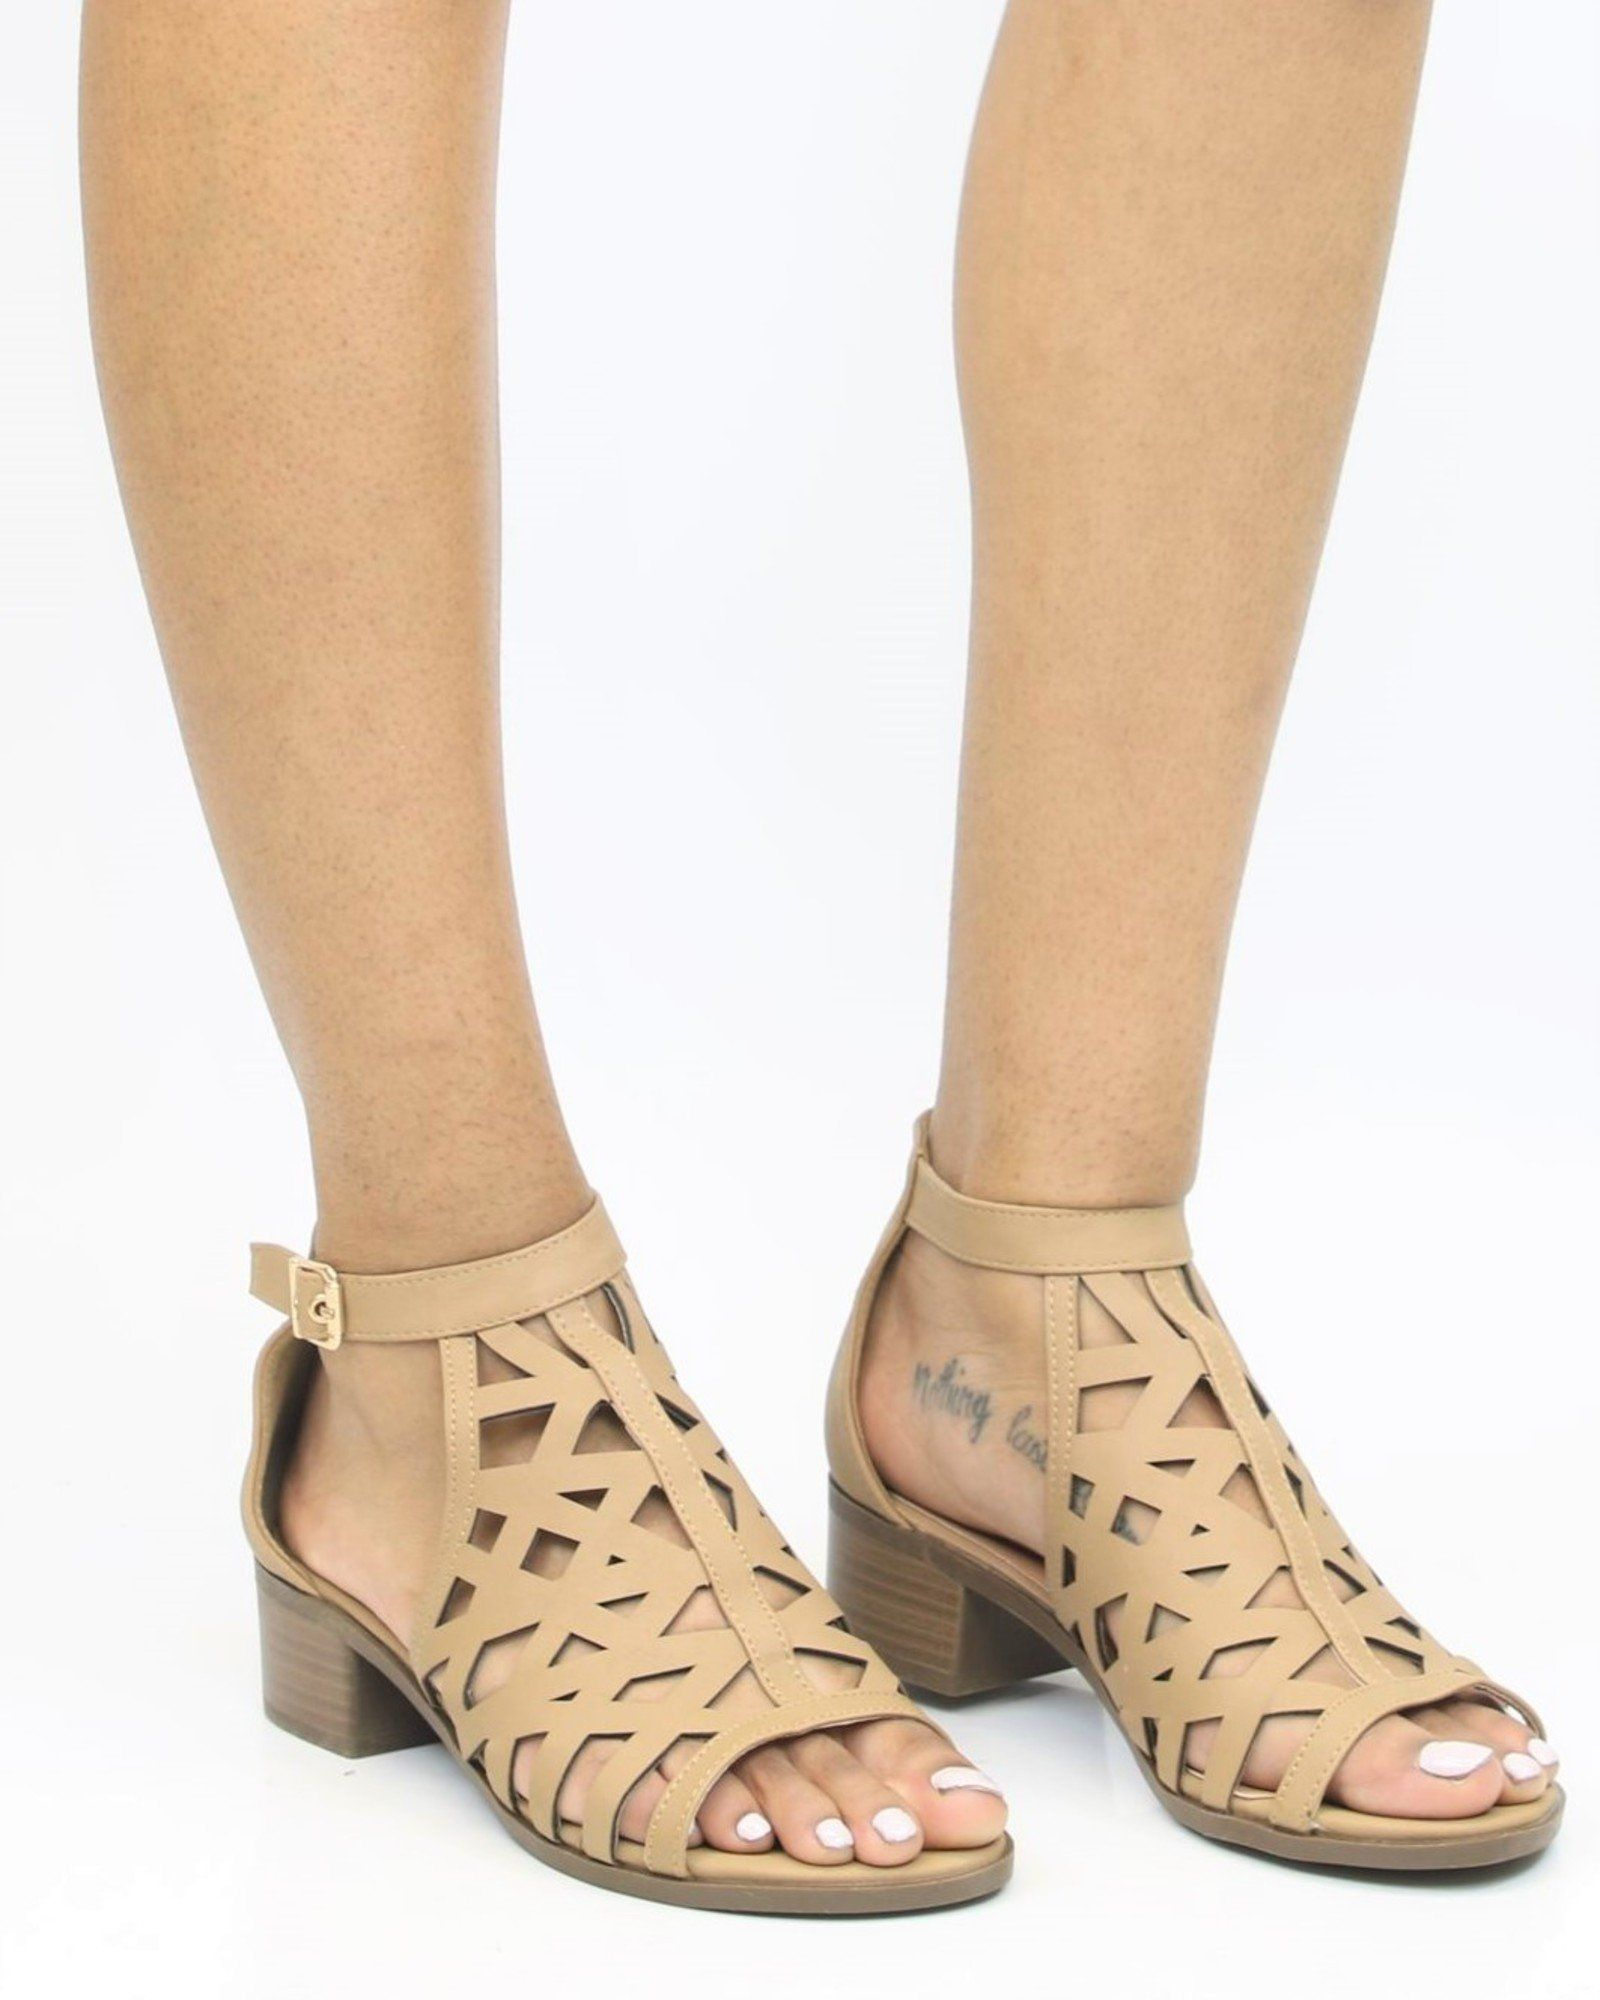 26f9513351c1 Starlight Perforated Stacked Heel Sandals - Tan